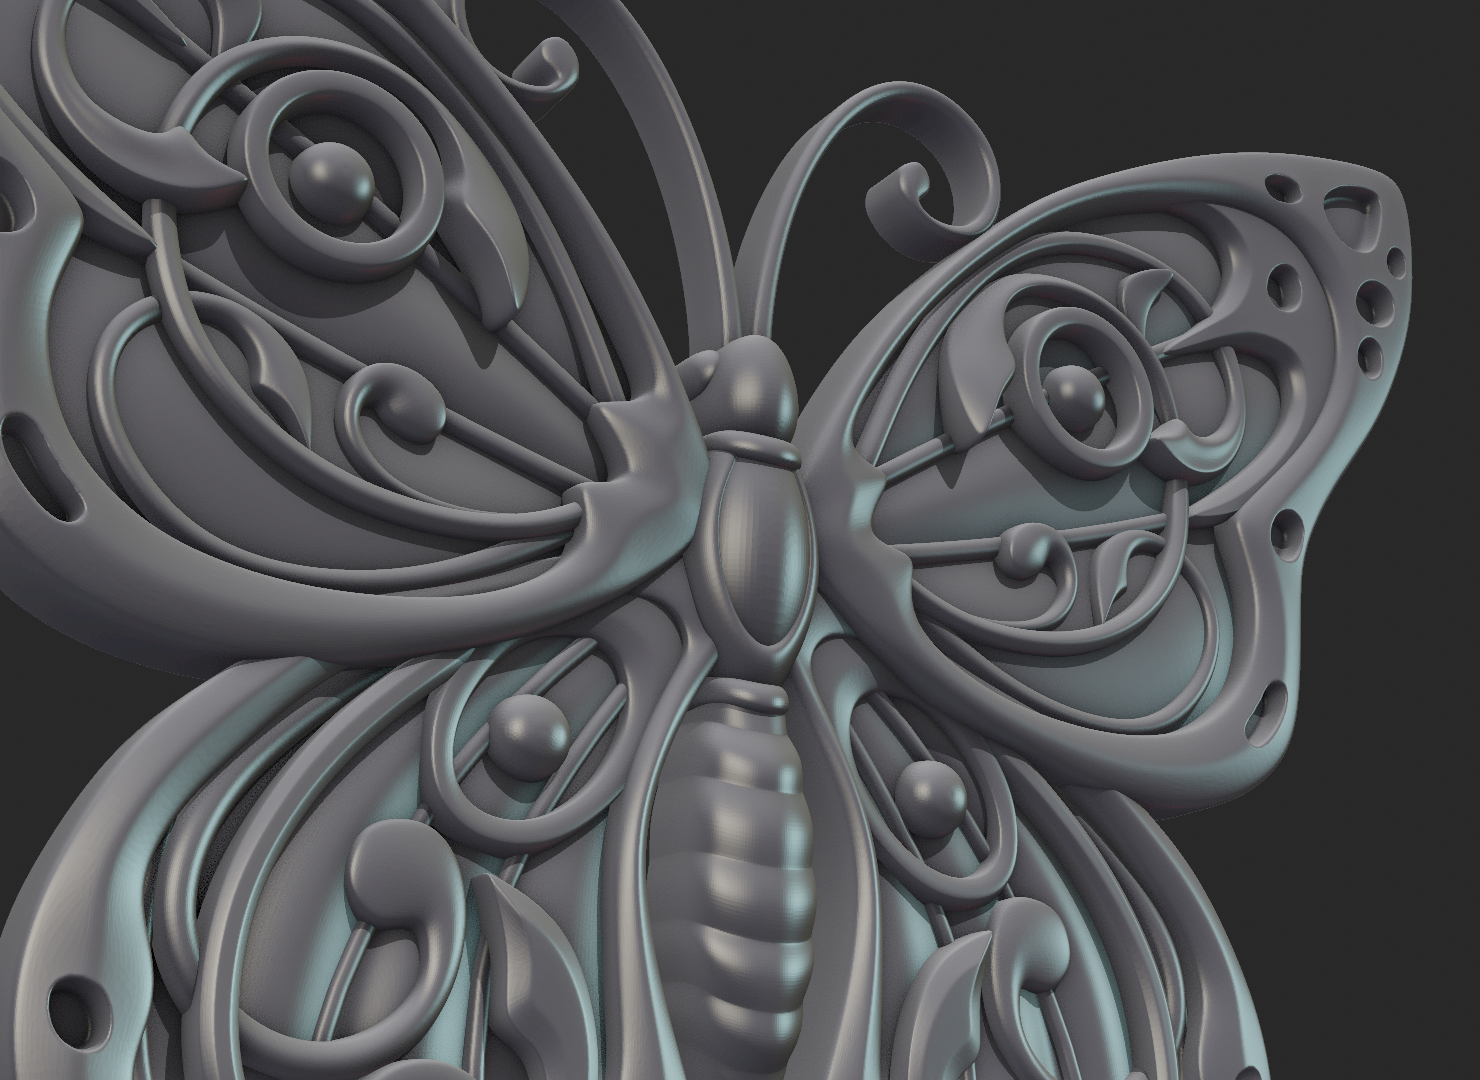 Butterfly_OPGL_28-03.png Download STL file Butterfly relief • Model to 3D print, Skazok